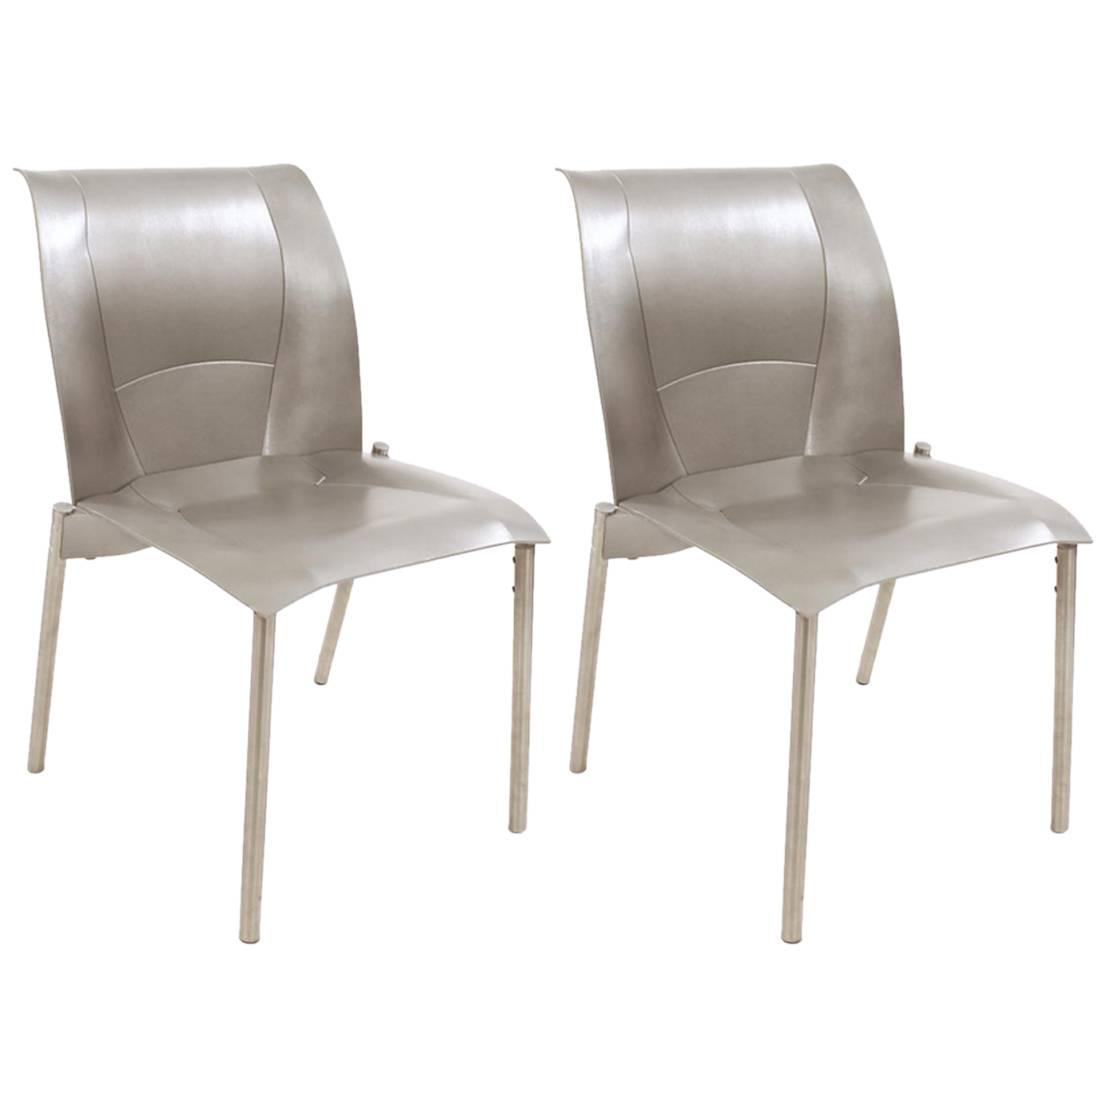 pilot international chair en knoll architonic b lounge product chairs from by